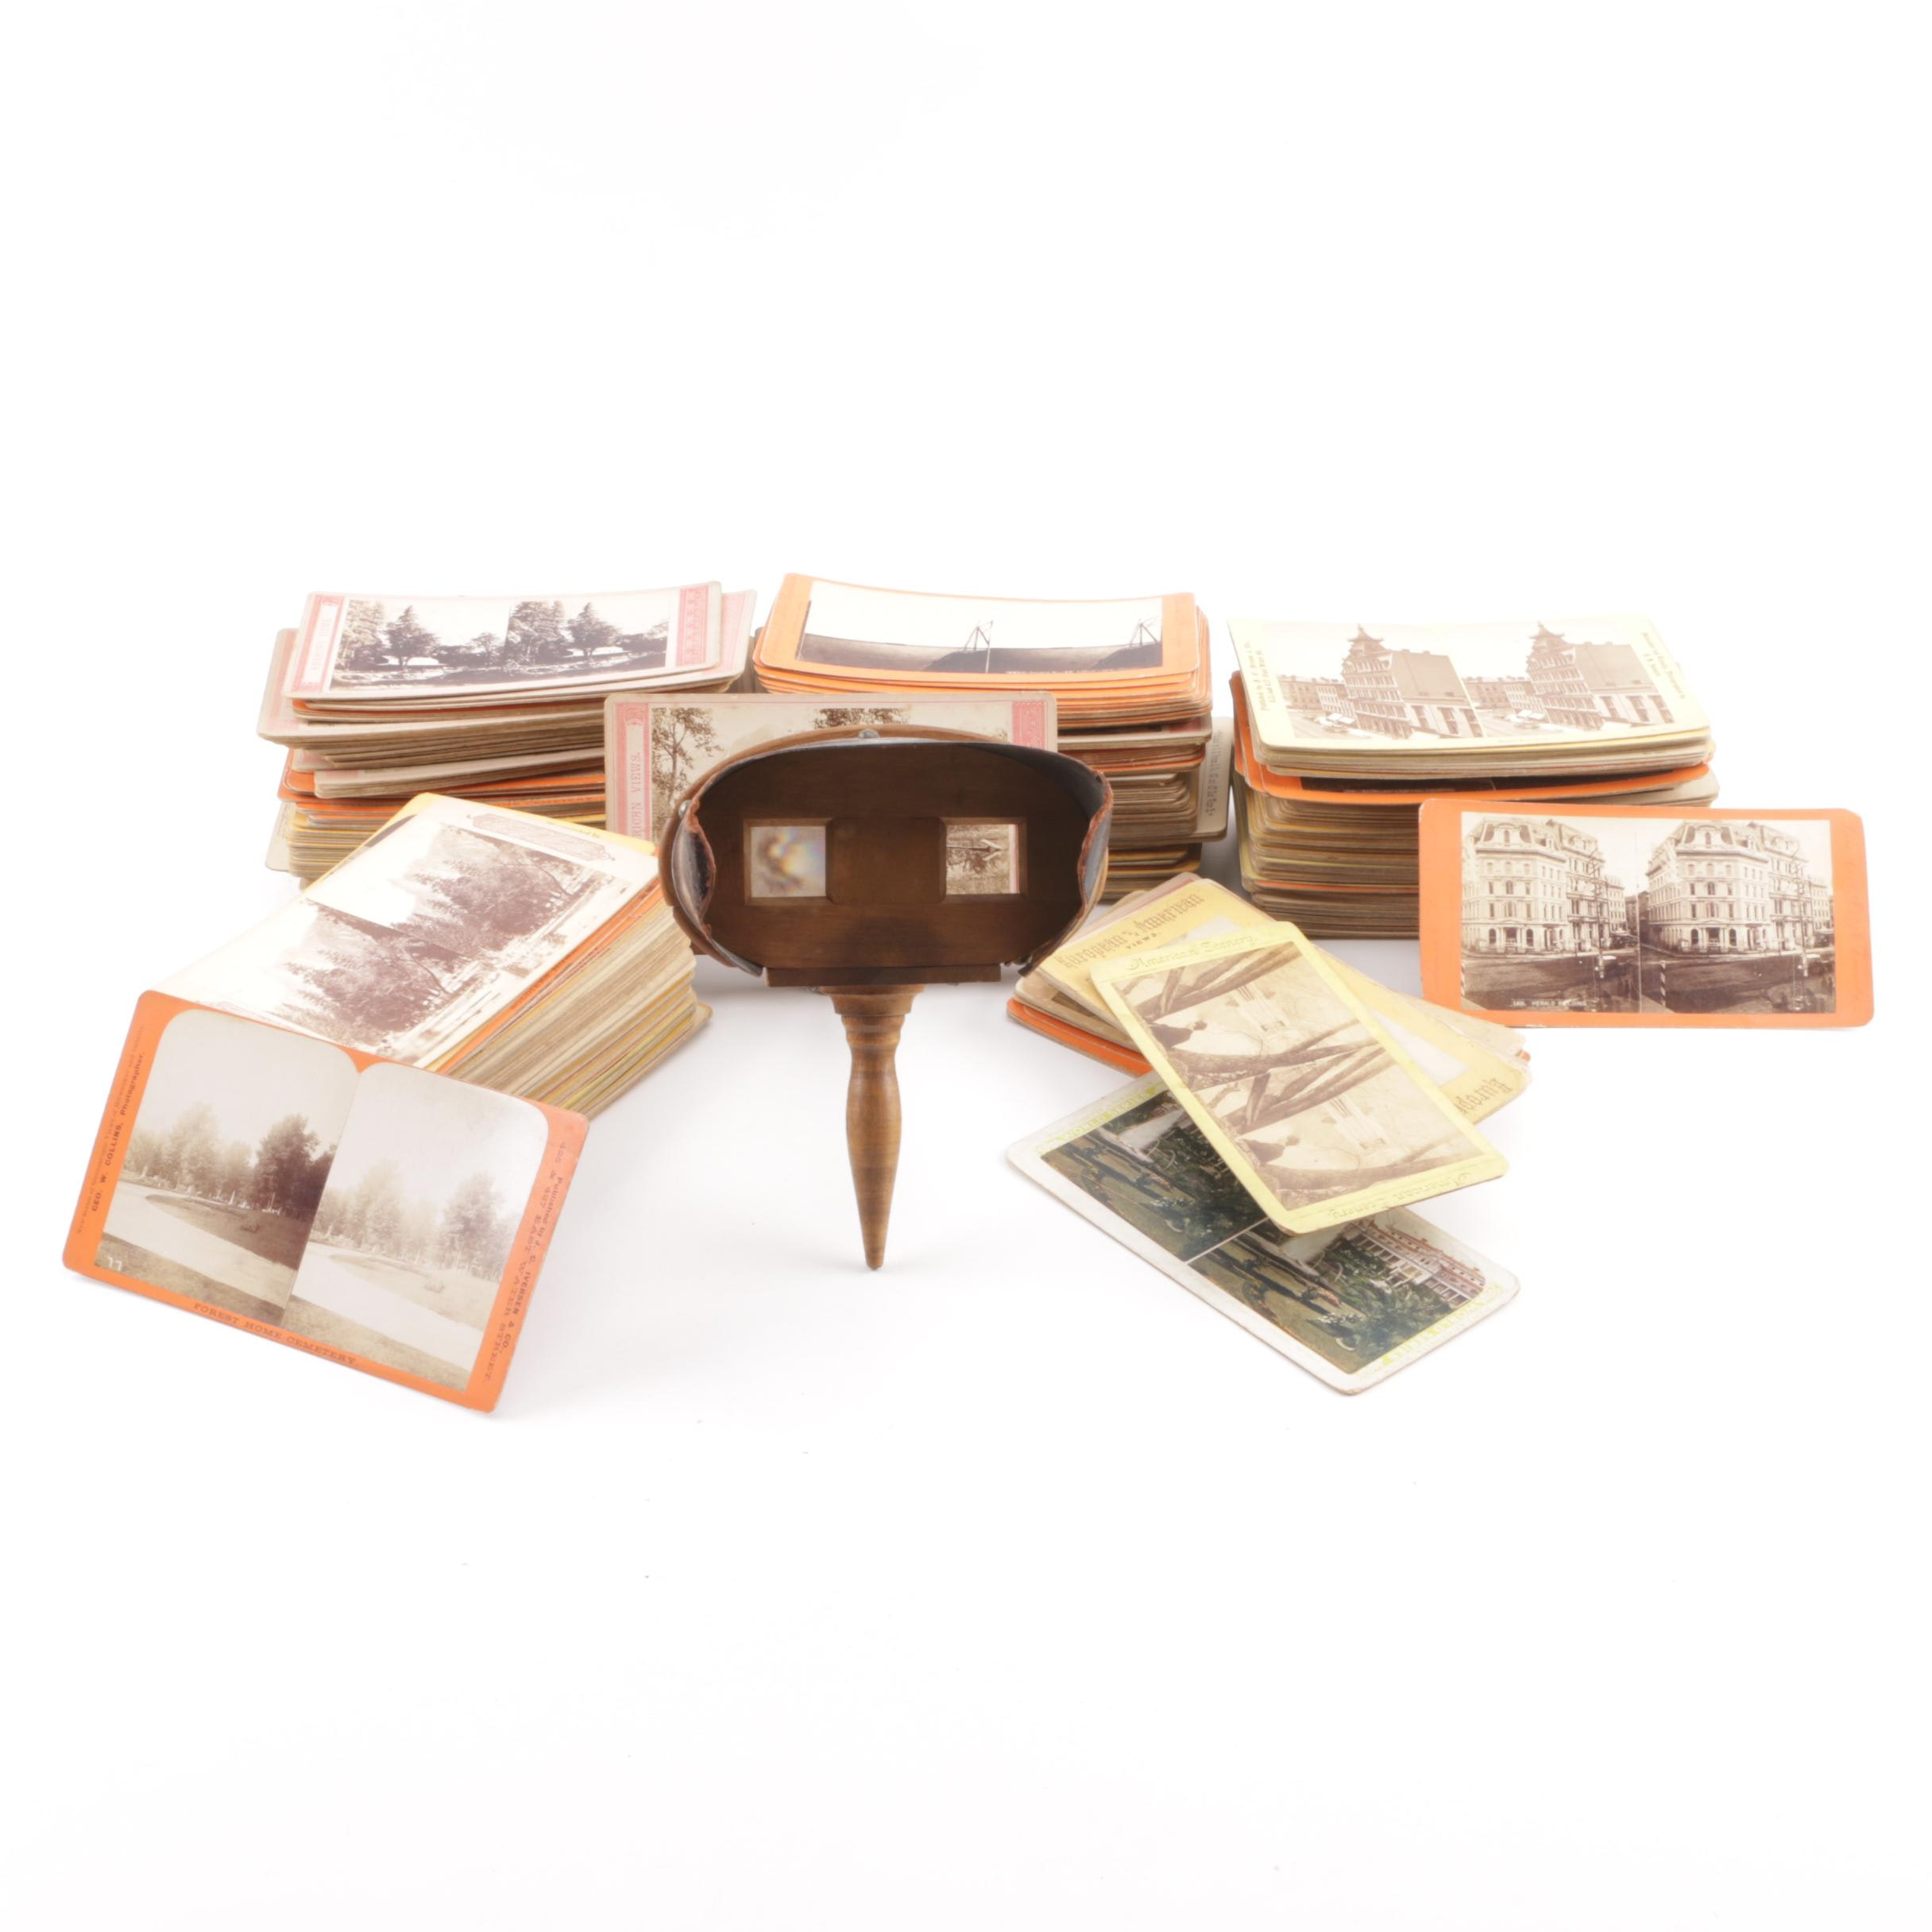 Antique Stereoscope Viewer and Cards